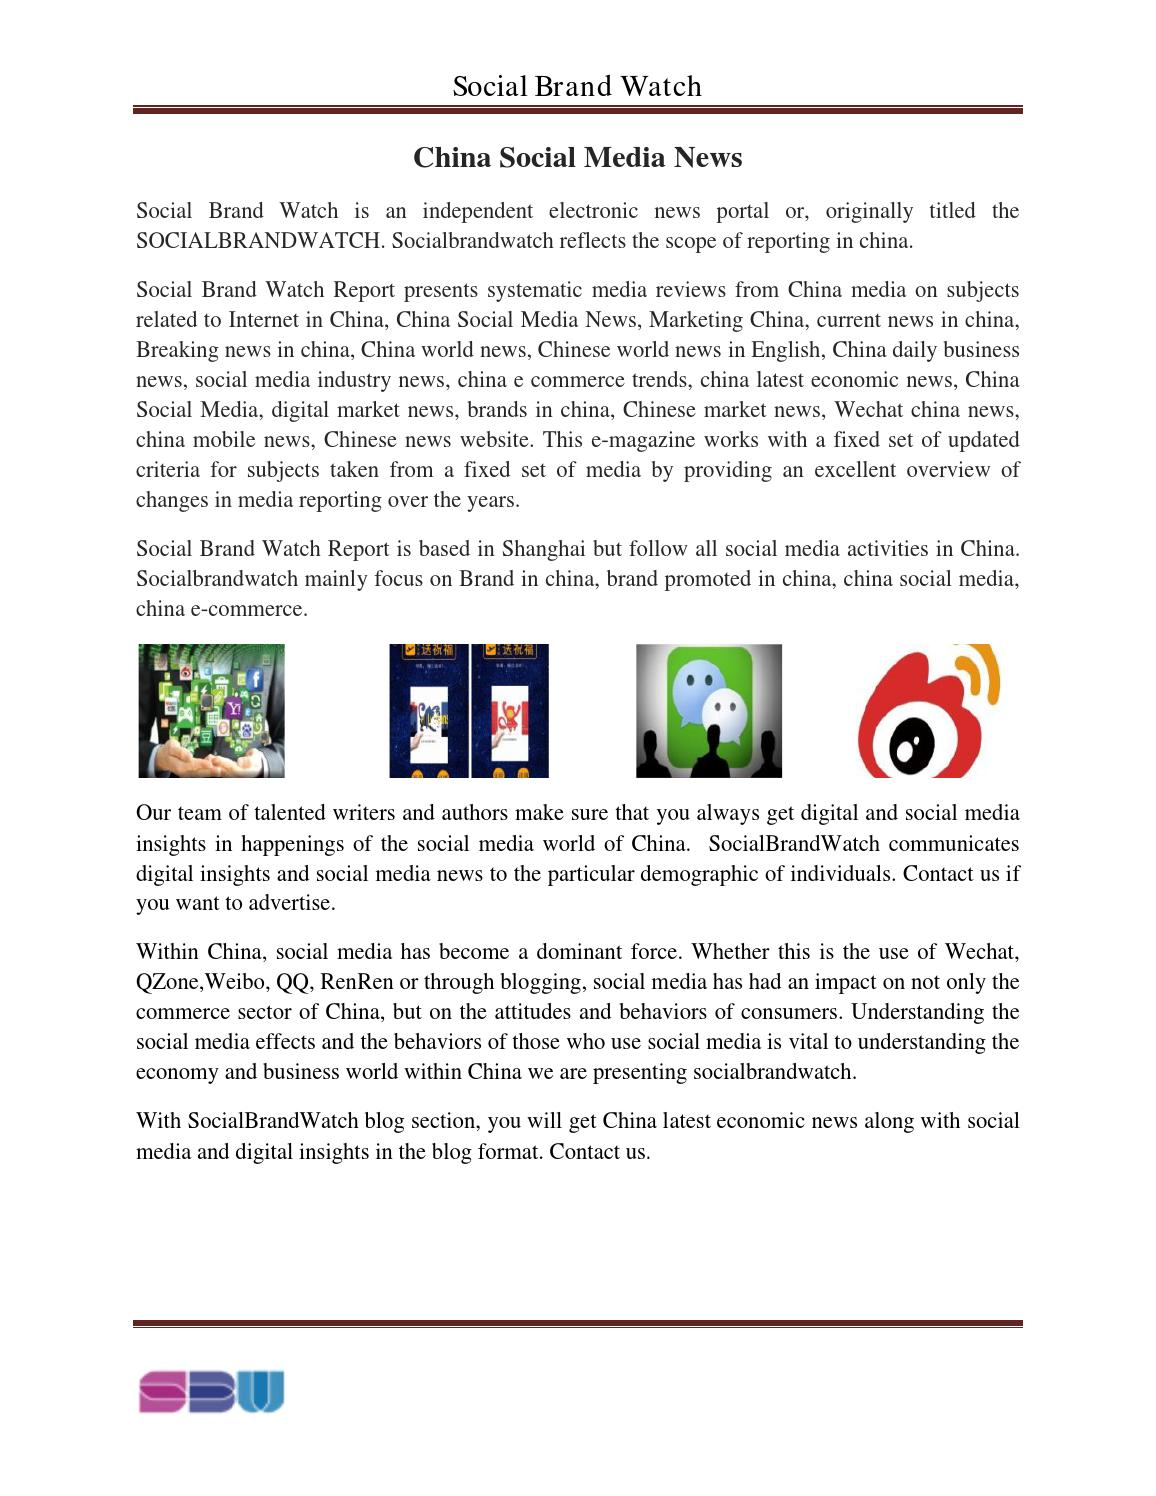 China social media news by Social Brand Watch - issuu